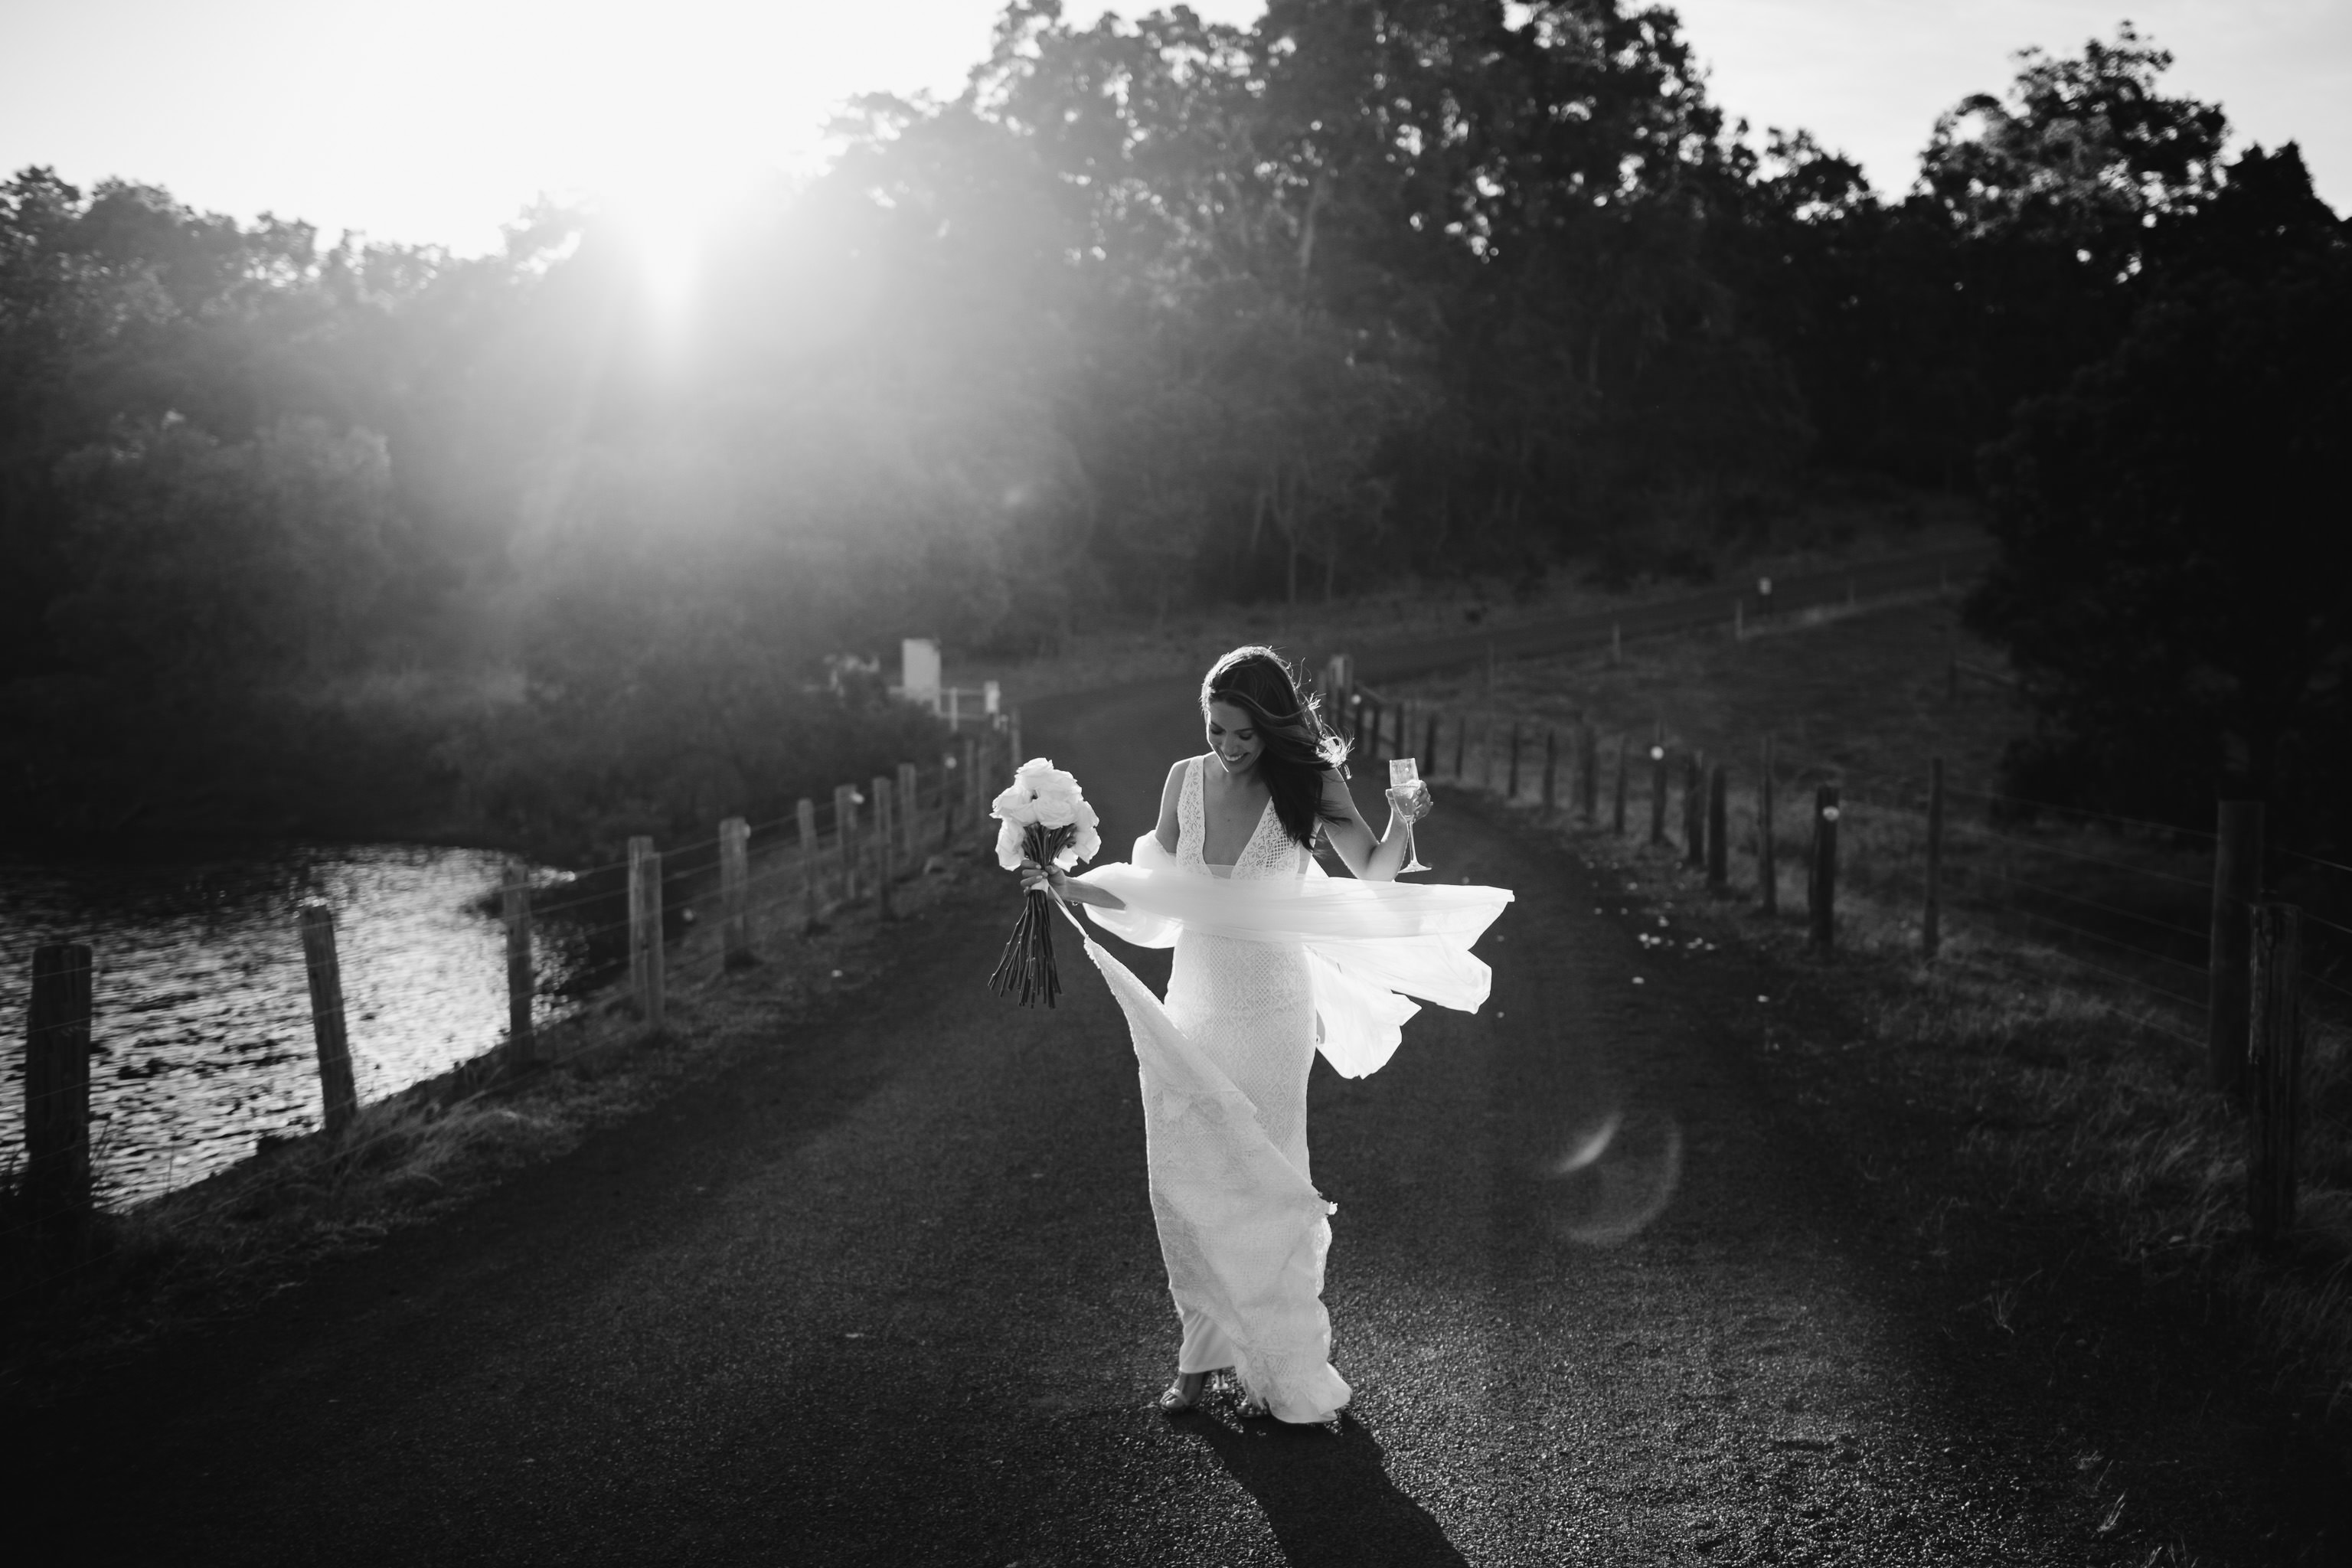 Stunning backlit photo of bride dancing with a glass of champagne while her veil blows in the wind